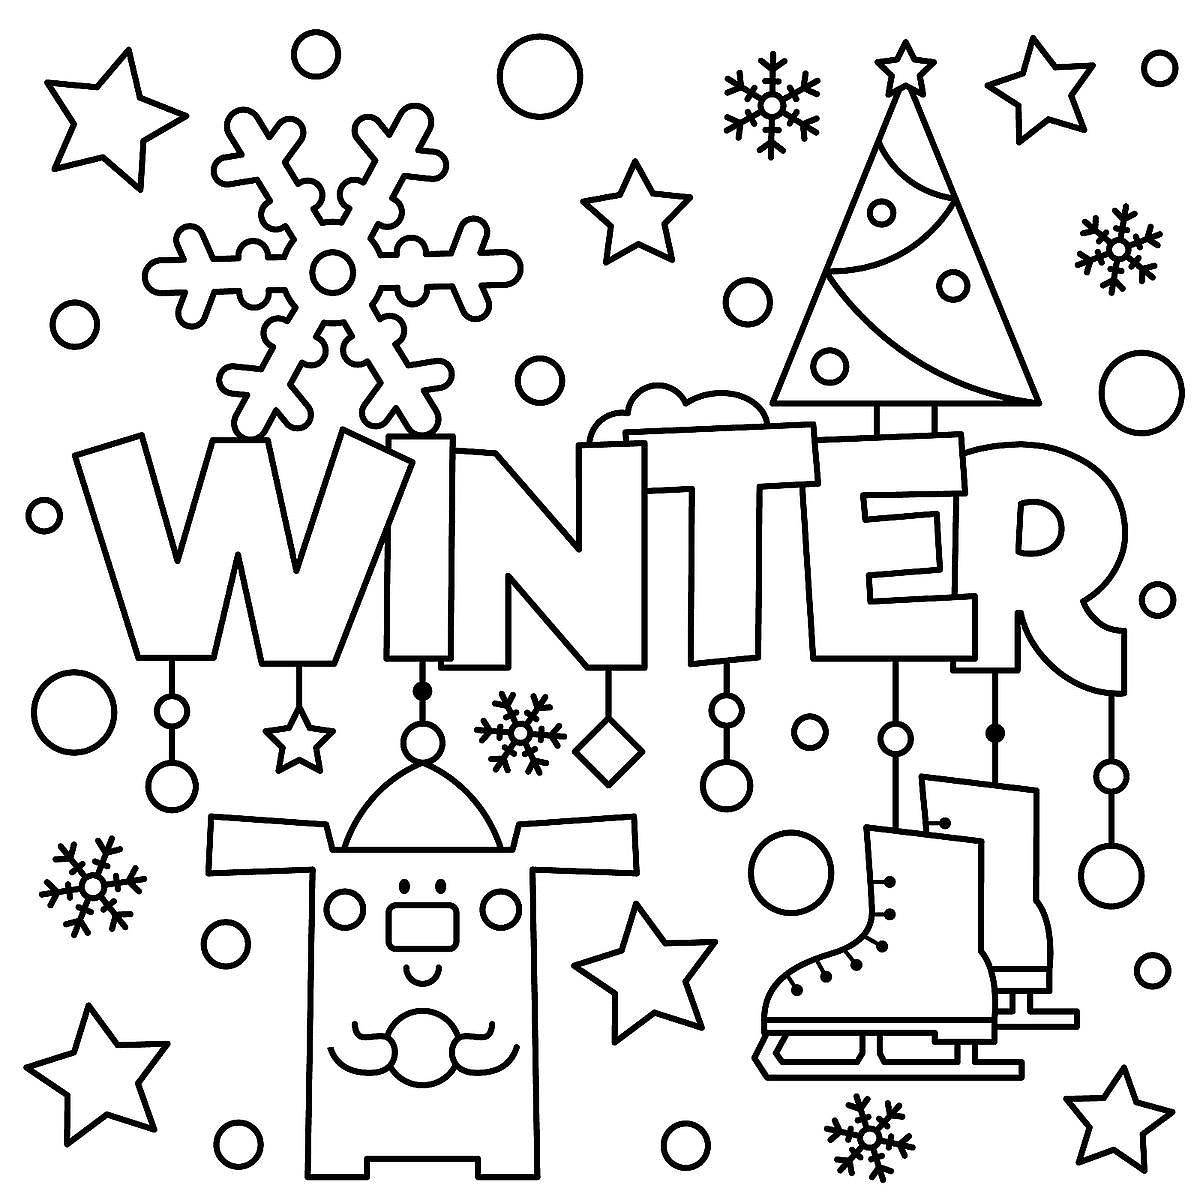 Winter Puzzle & Coloring Pages: Printable Winter-Themed Activity - Printable Winter Puzzle